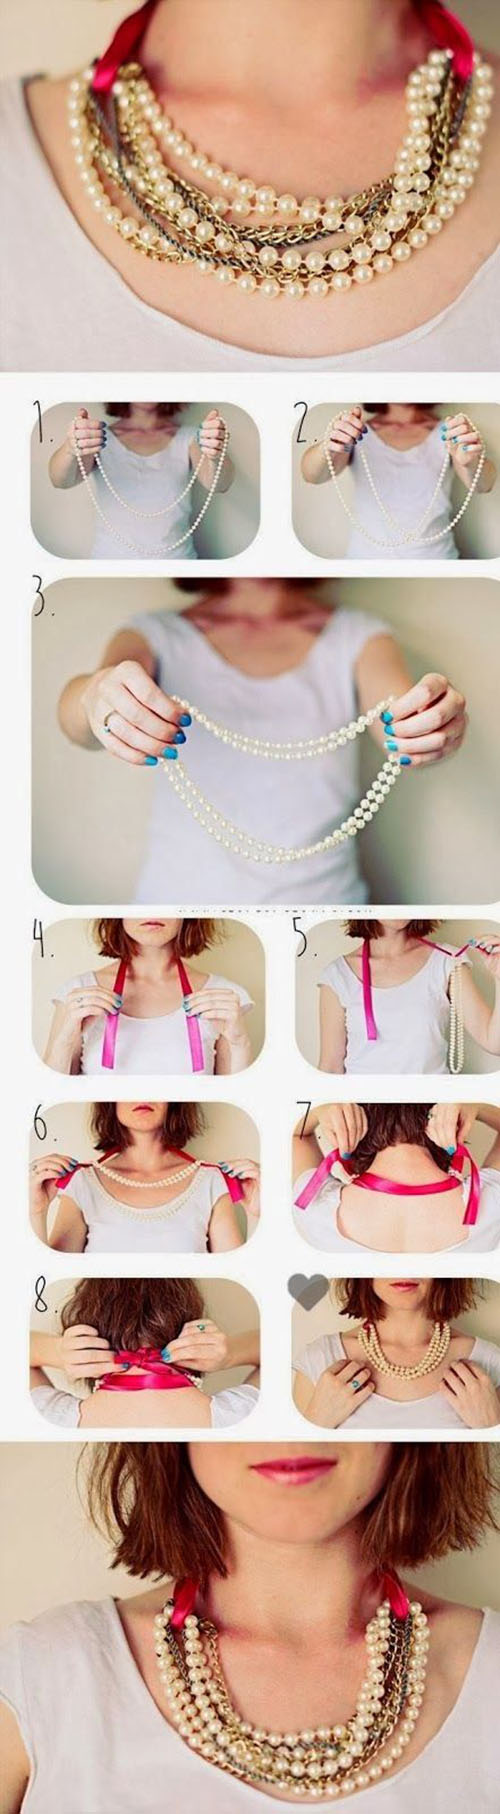 DIY Pearl Necklace In Seconds11